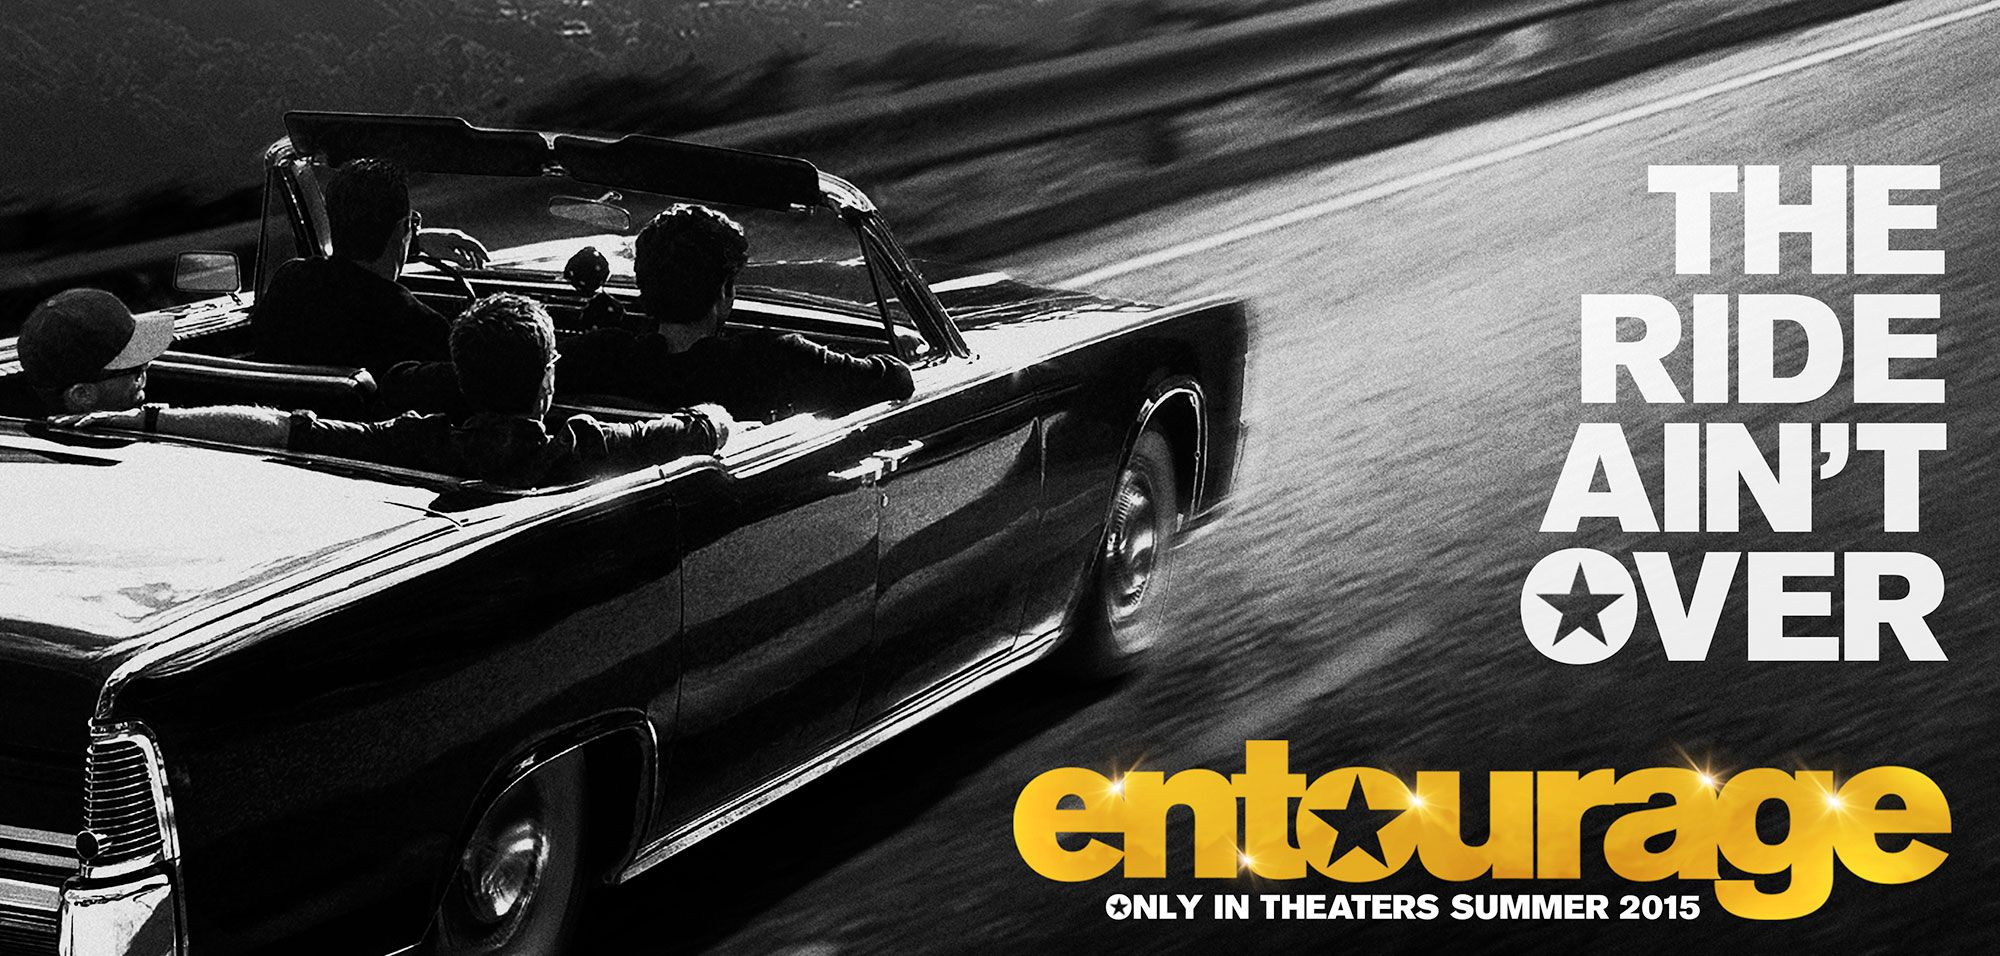 Warner Brothers has released the first official teaser trailer for Entourage, the upcoming film that picks up with the same characters of the long-running HBO series. Entourage, the much-anticipate...